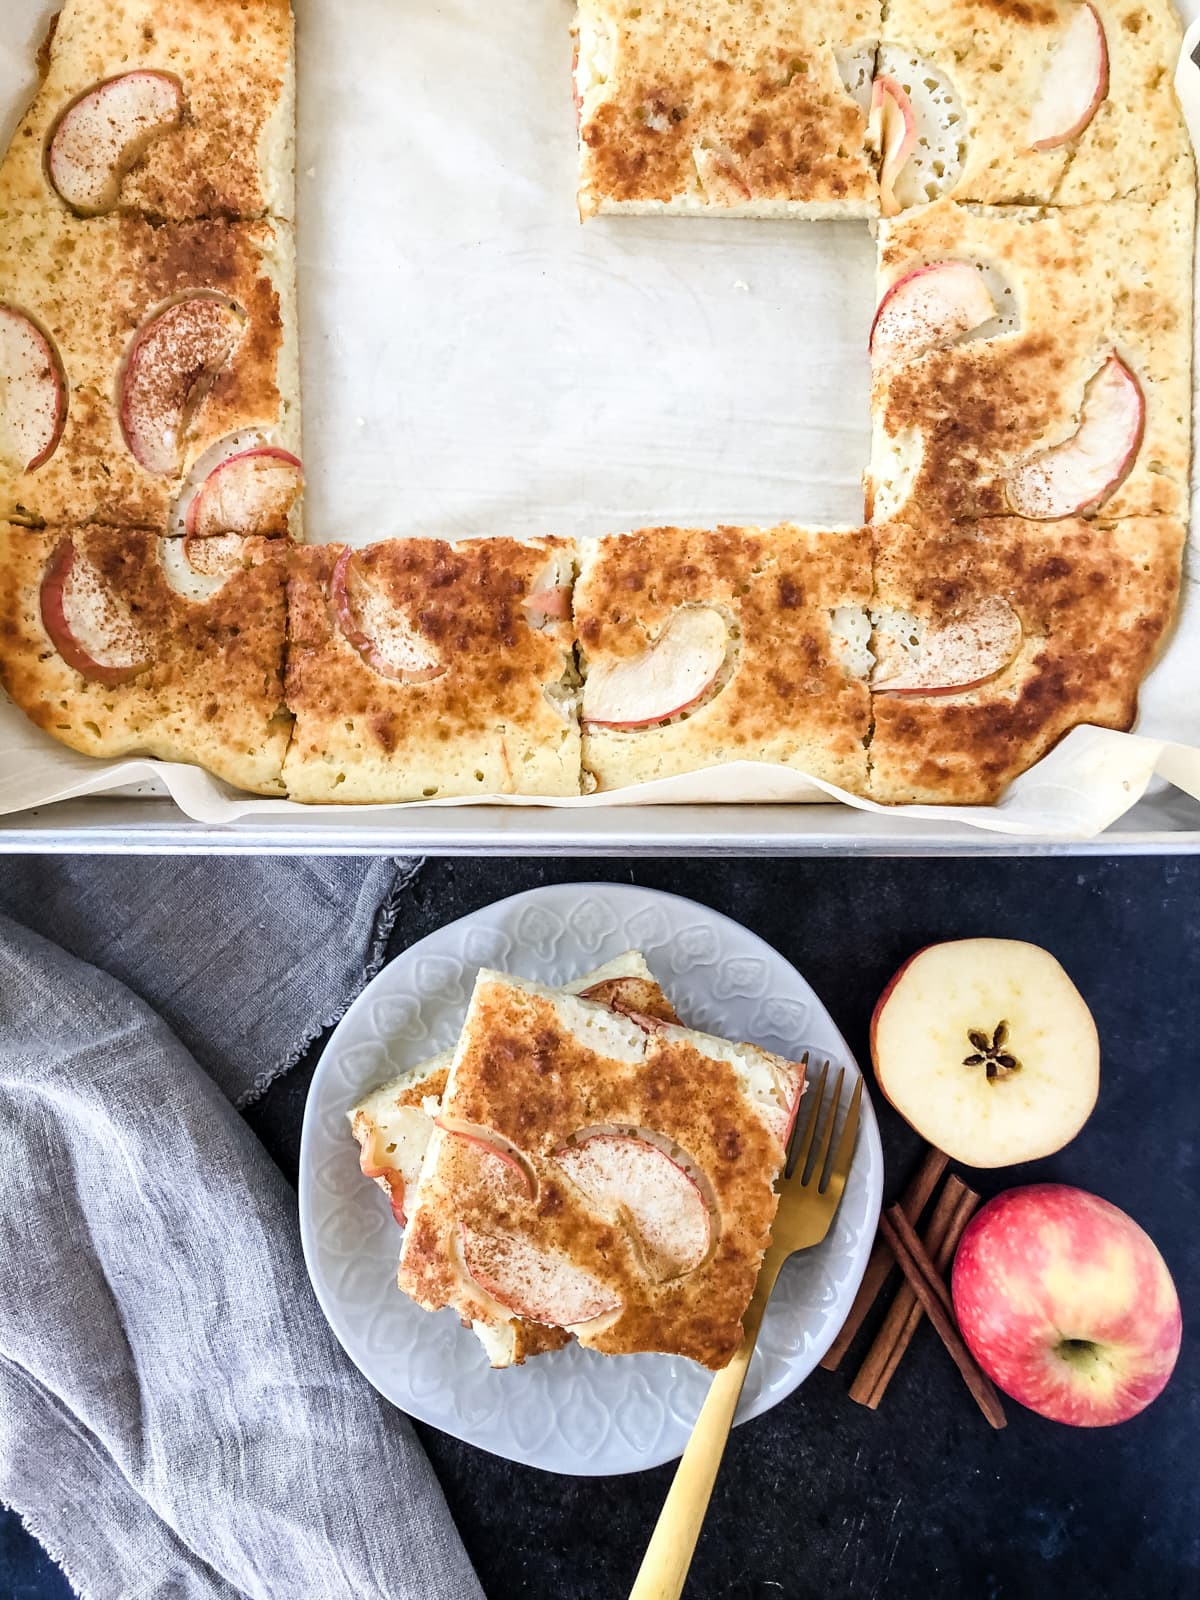 A pan of fresh baked Apple Pie Sheet Pan Pancakes, cut up and ready to serve.